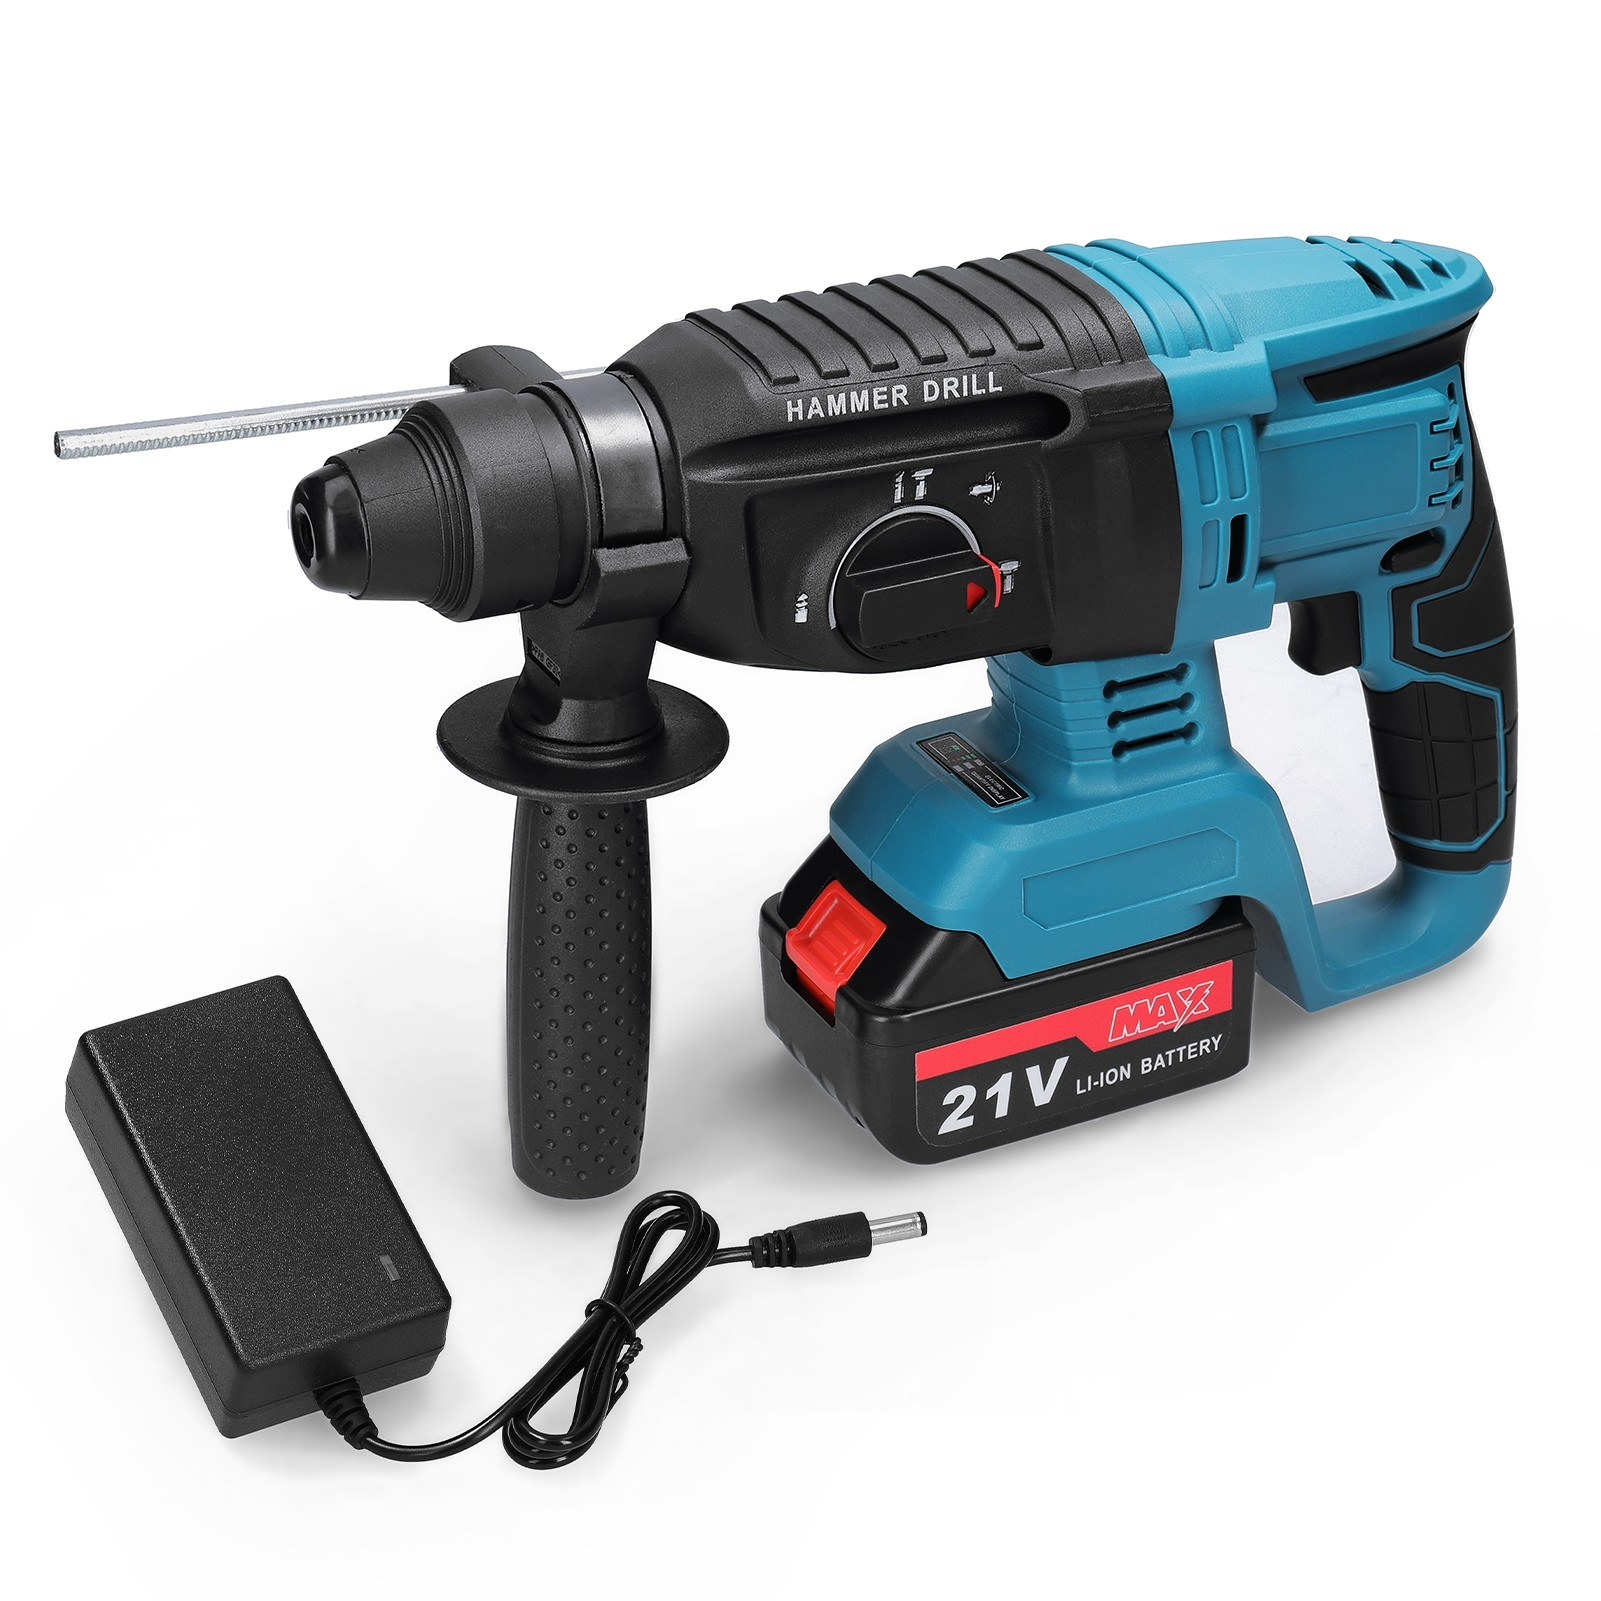 cafago.com - 53% OFF Multifunctional Rechargeable Impact Electric Hammer Drill Rotary,free shipping+$101.65